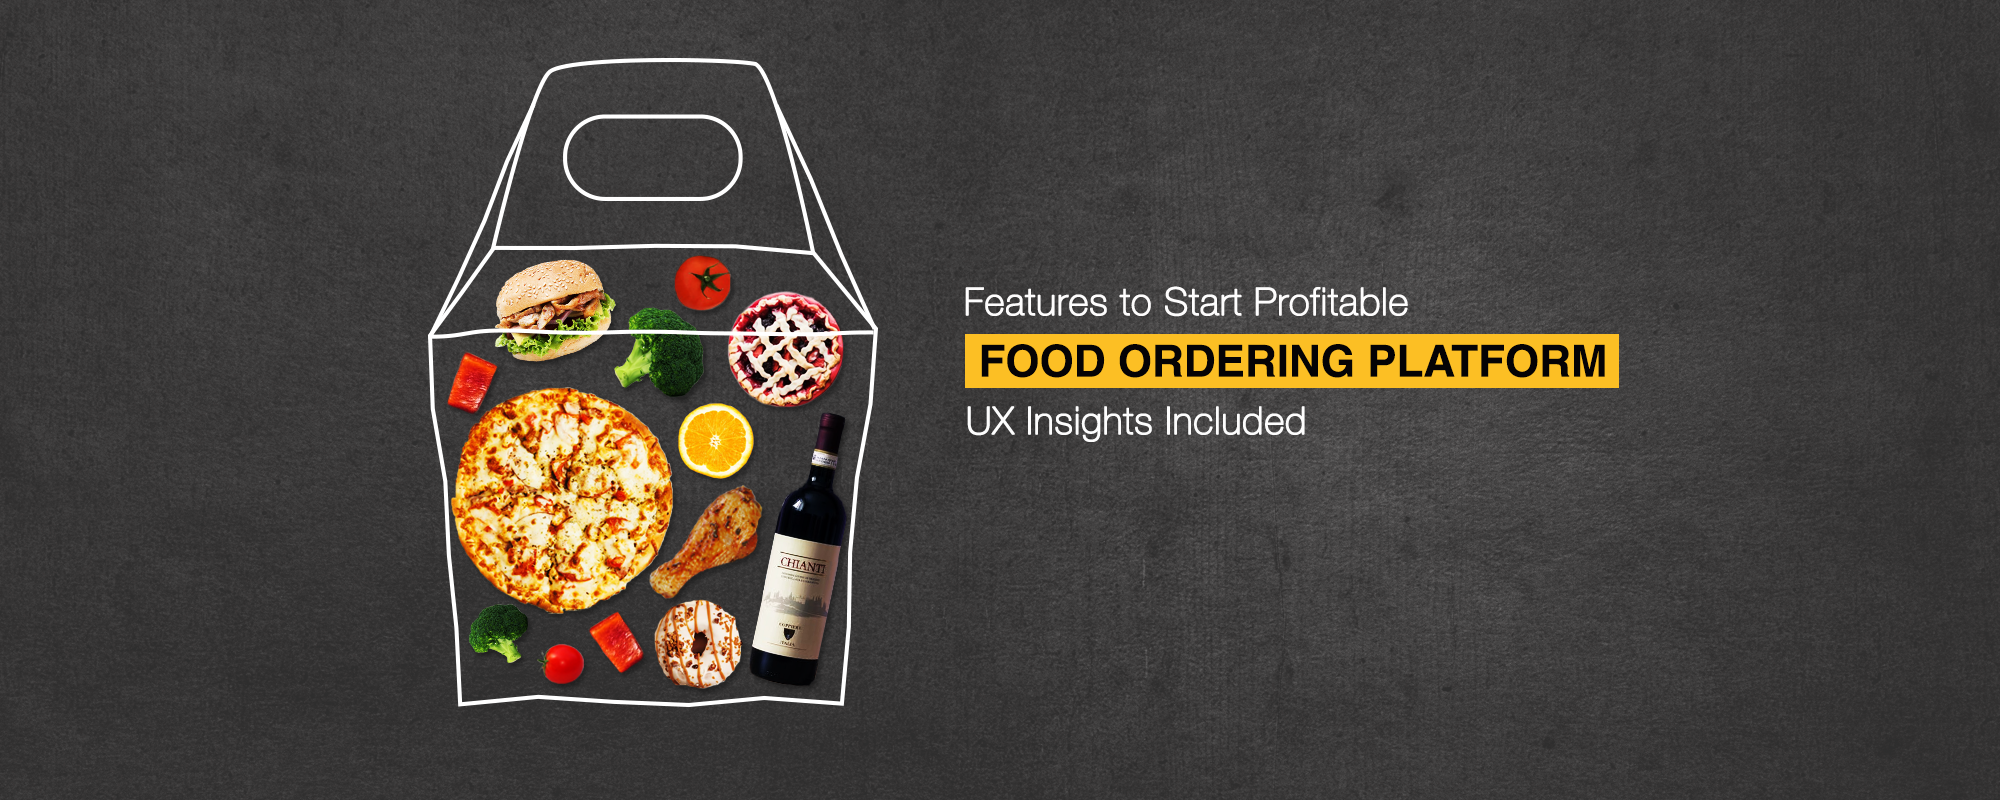 Features To Make Your Online Food Ordering And Delivery